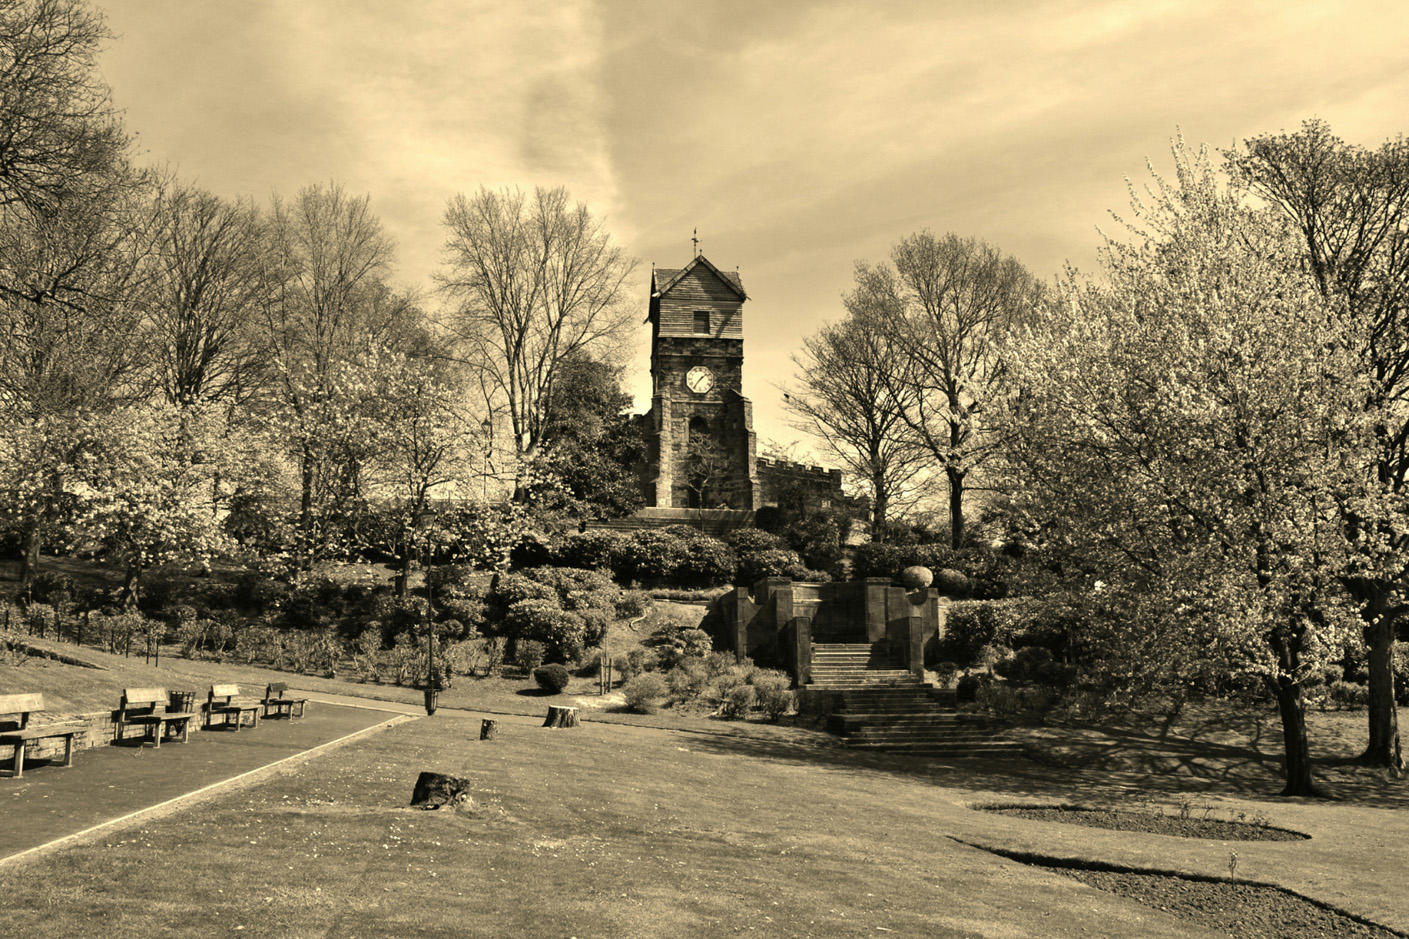 St Leonard's church from Jubilee Park in sepia